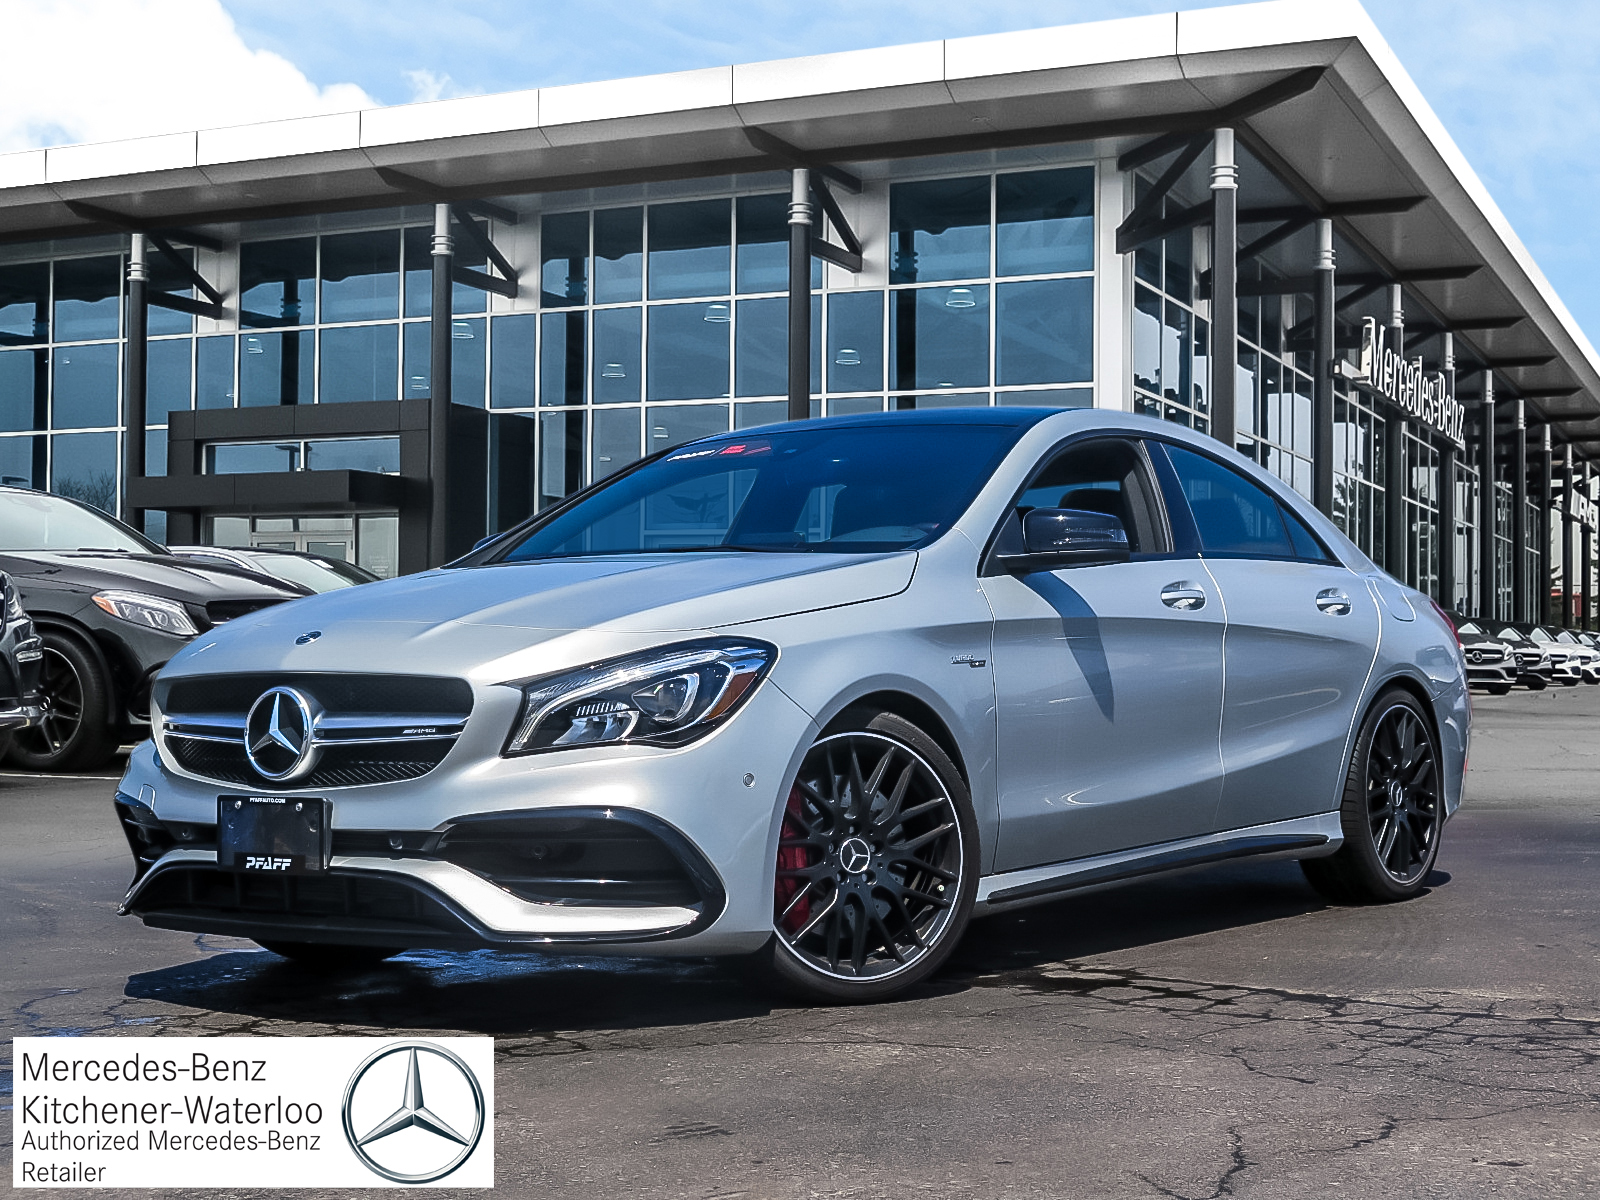 New 2018 Mercedes-Benz CLA45 AMG 4MATIC Coupe